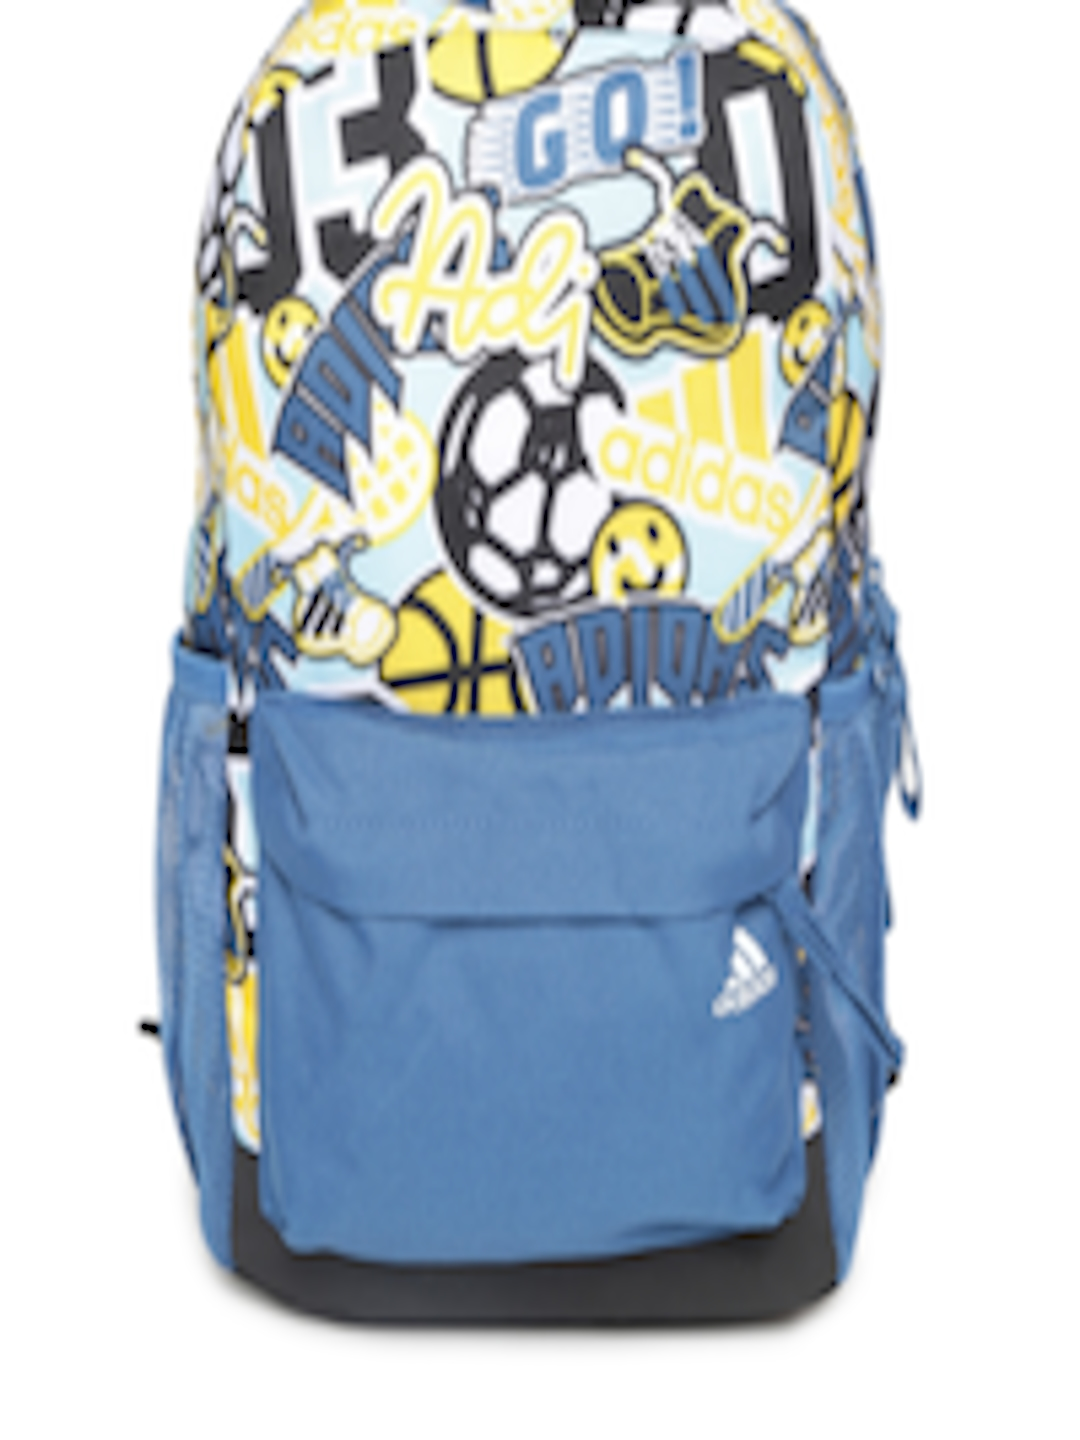 a9b8e4f45f71 Buy ADIDAS Kids Blue   Yellow LB GR BP Printed Backpack - Backpacks for Unisex  2236527